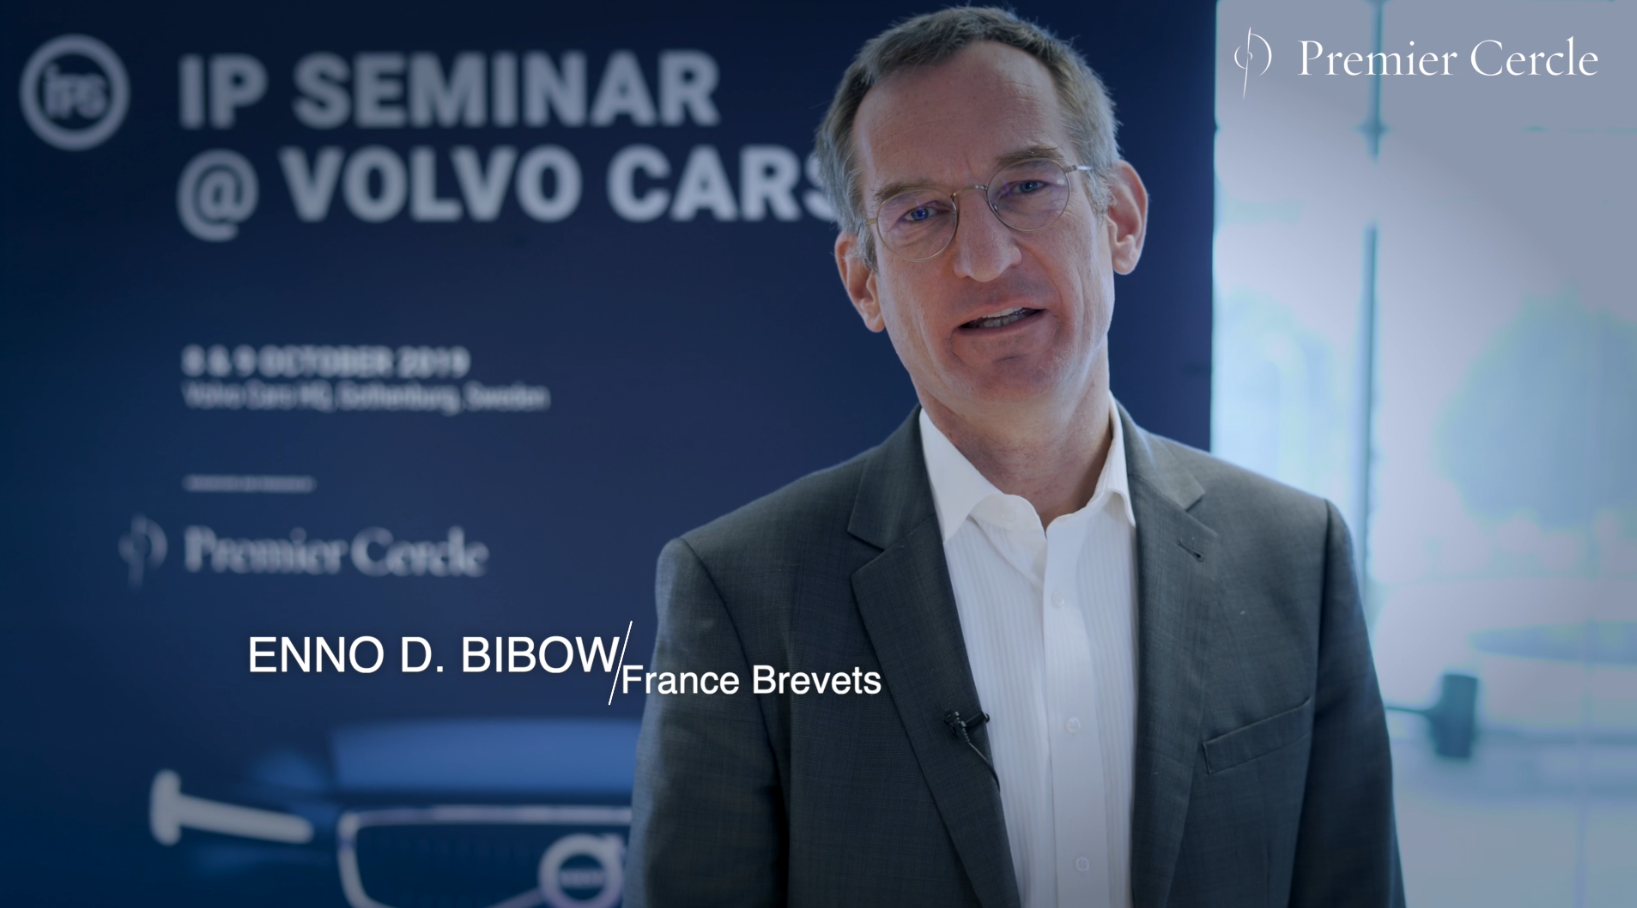 Enno D. Bibow from France Brevets interviewed by Premier Cercle